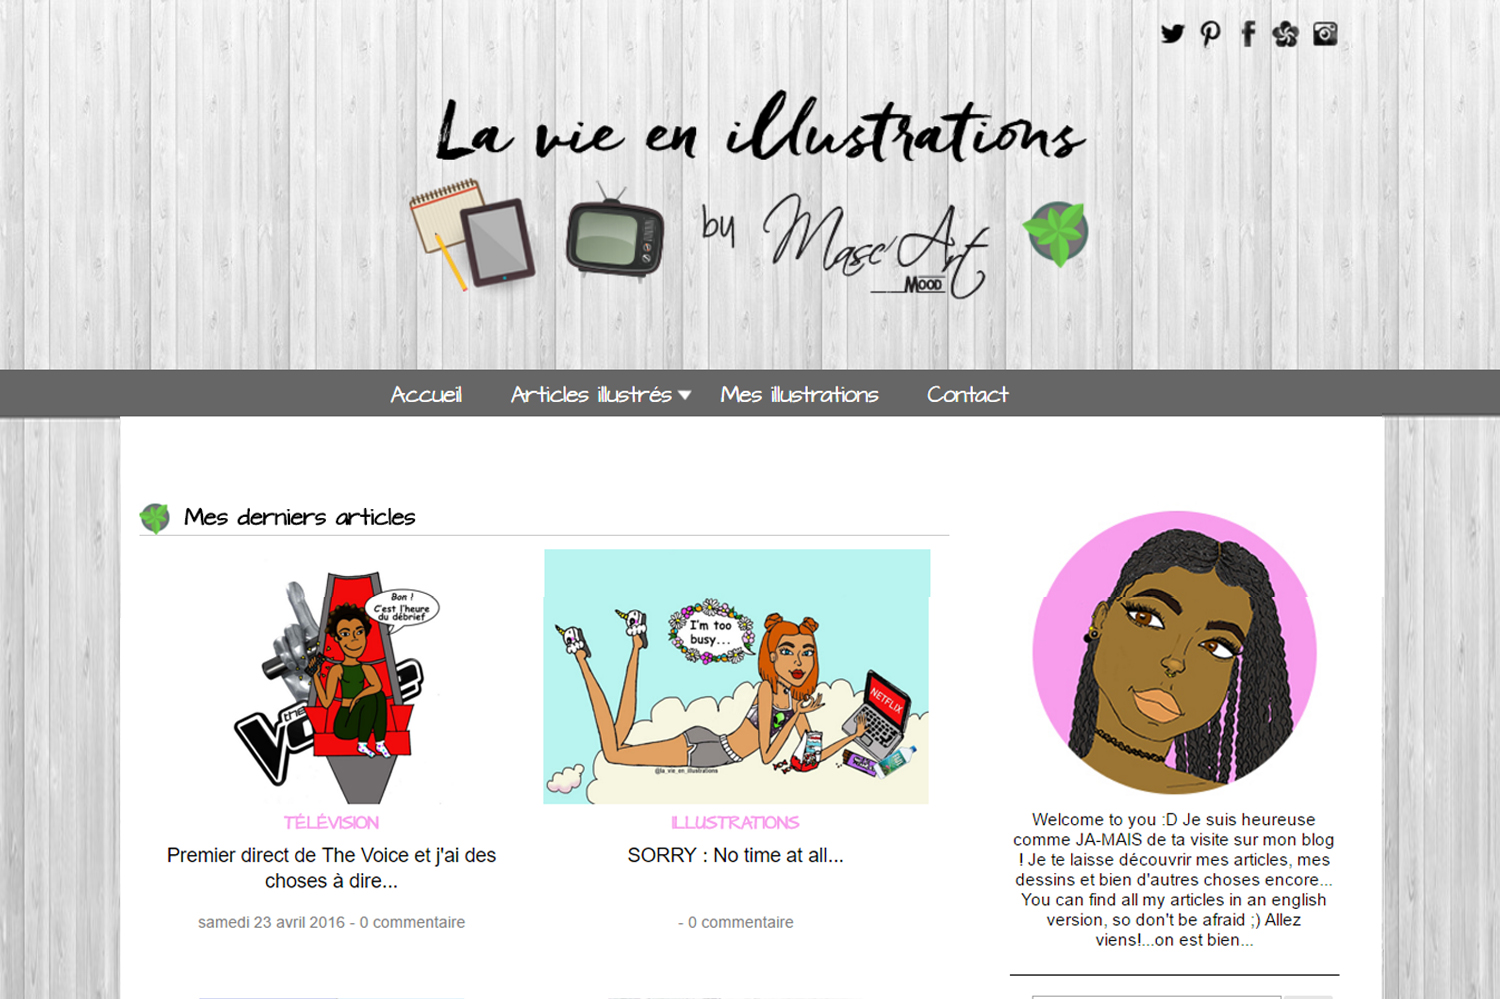 La vie en illustrations